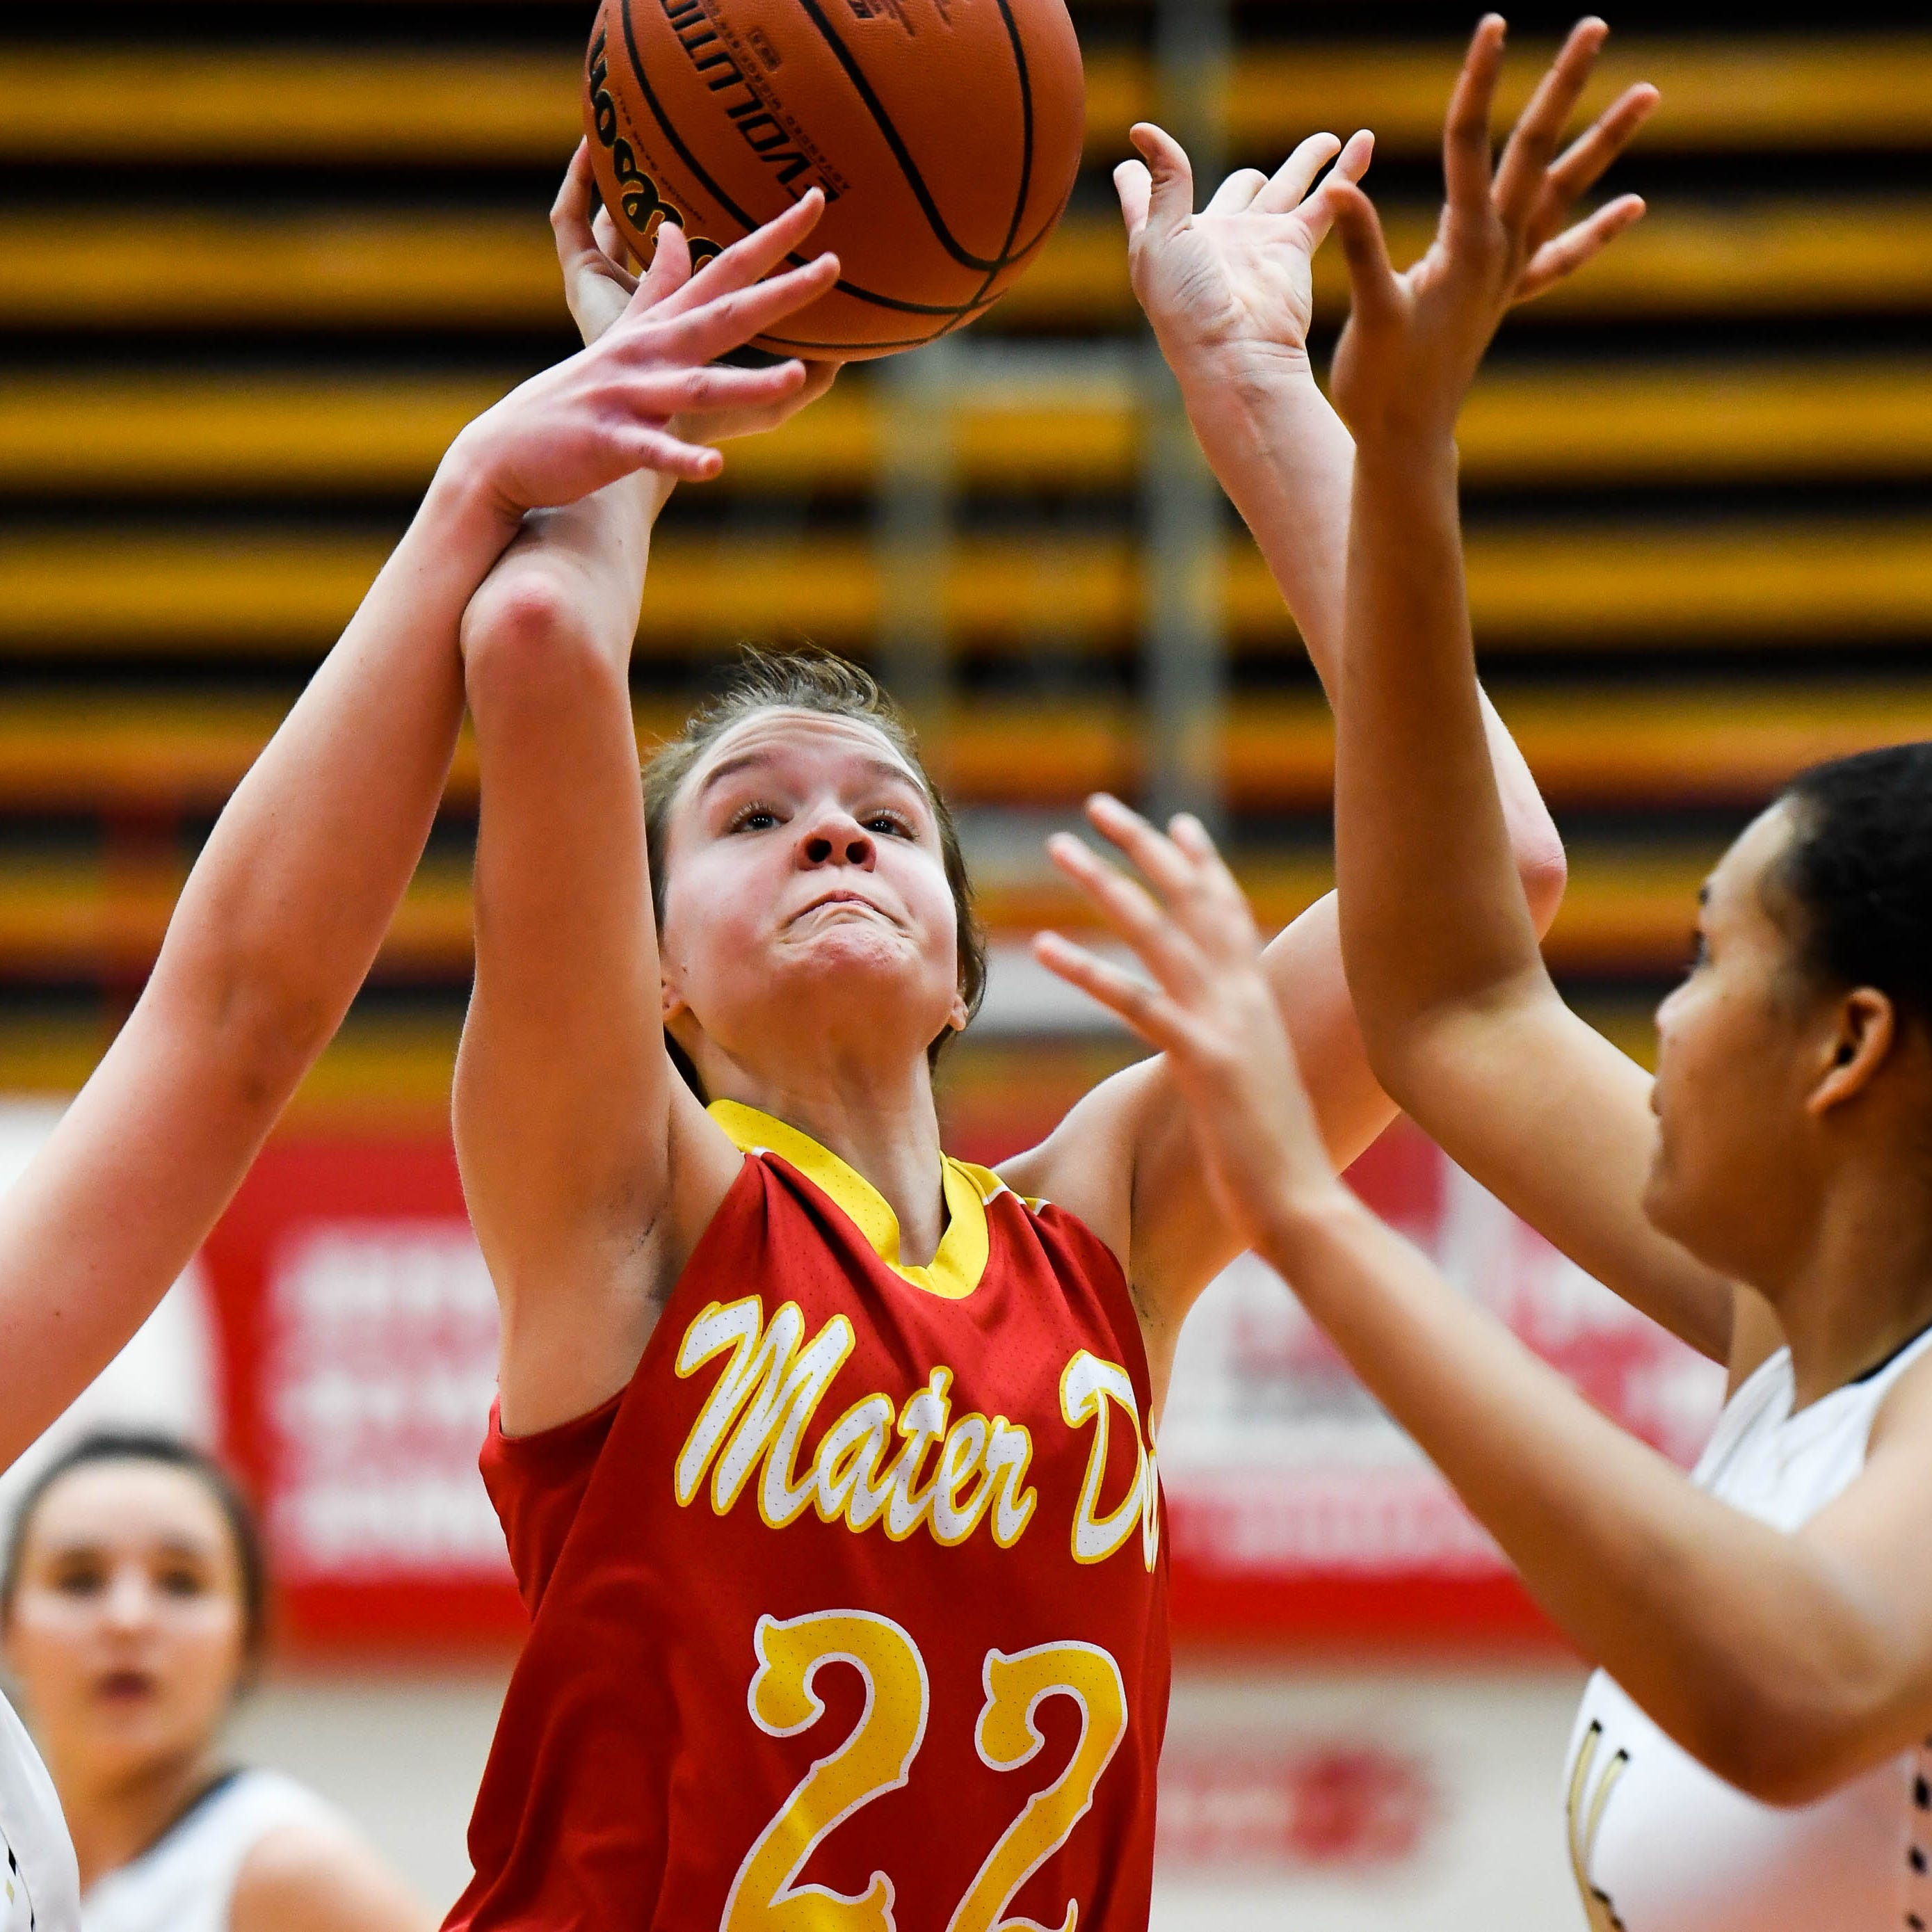 Hudson sparks Mater Dei's late rally, but it falls short in Class 2A semistate